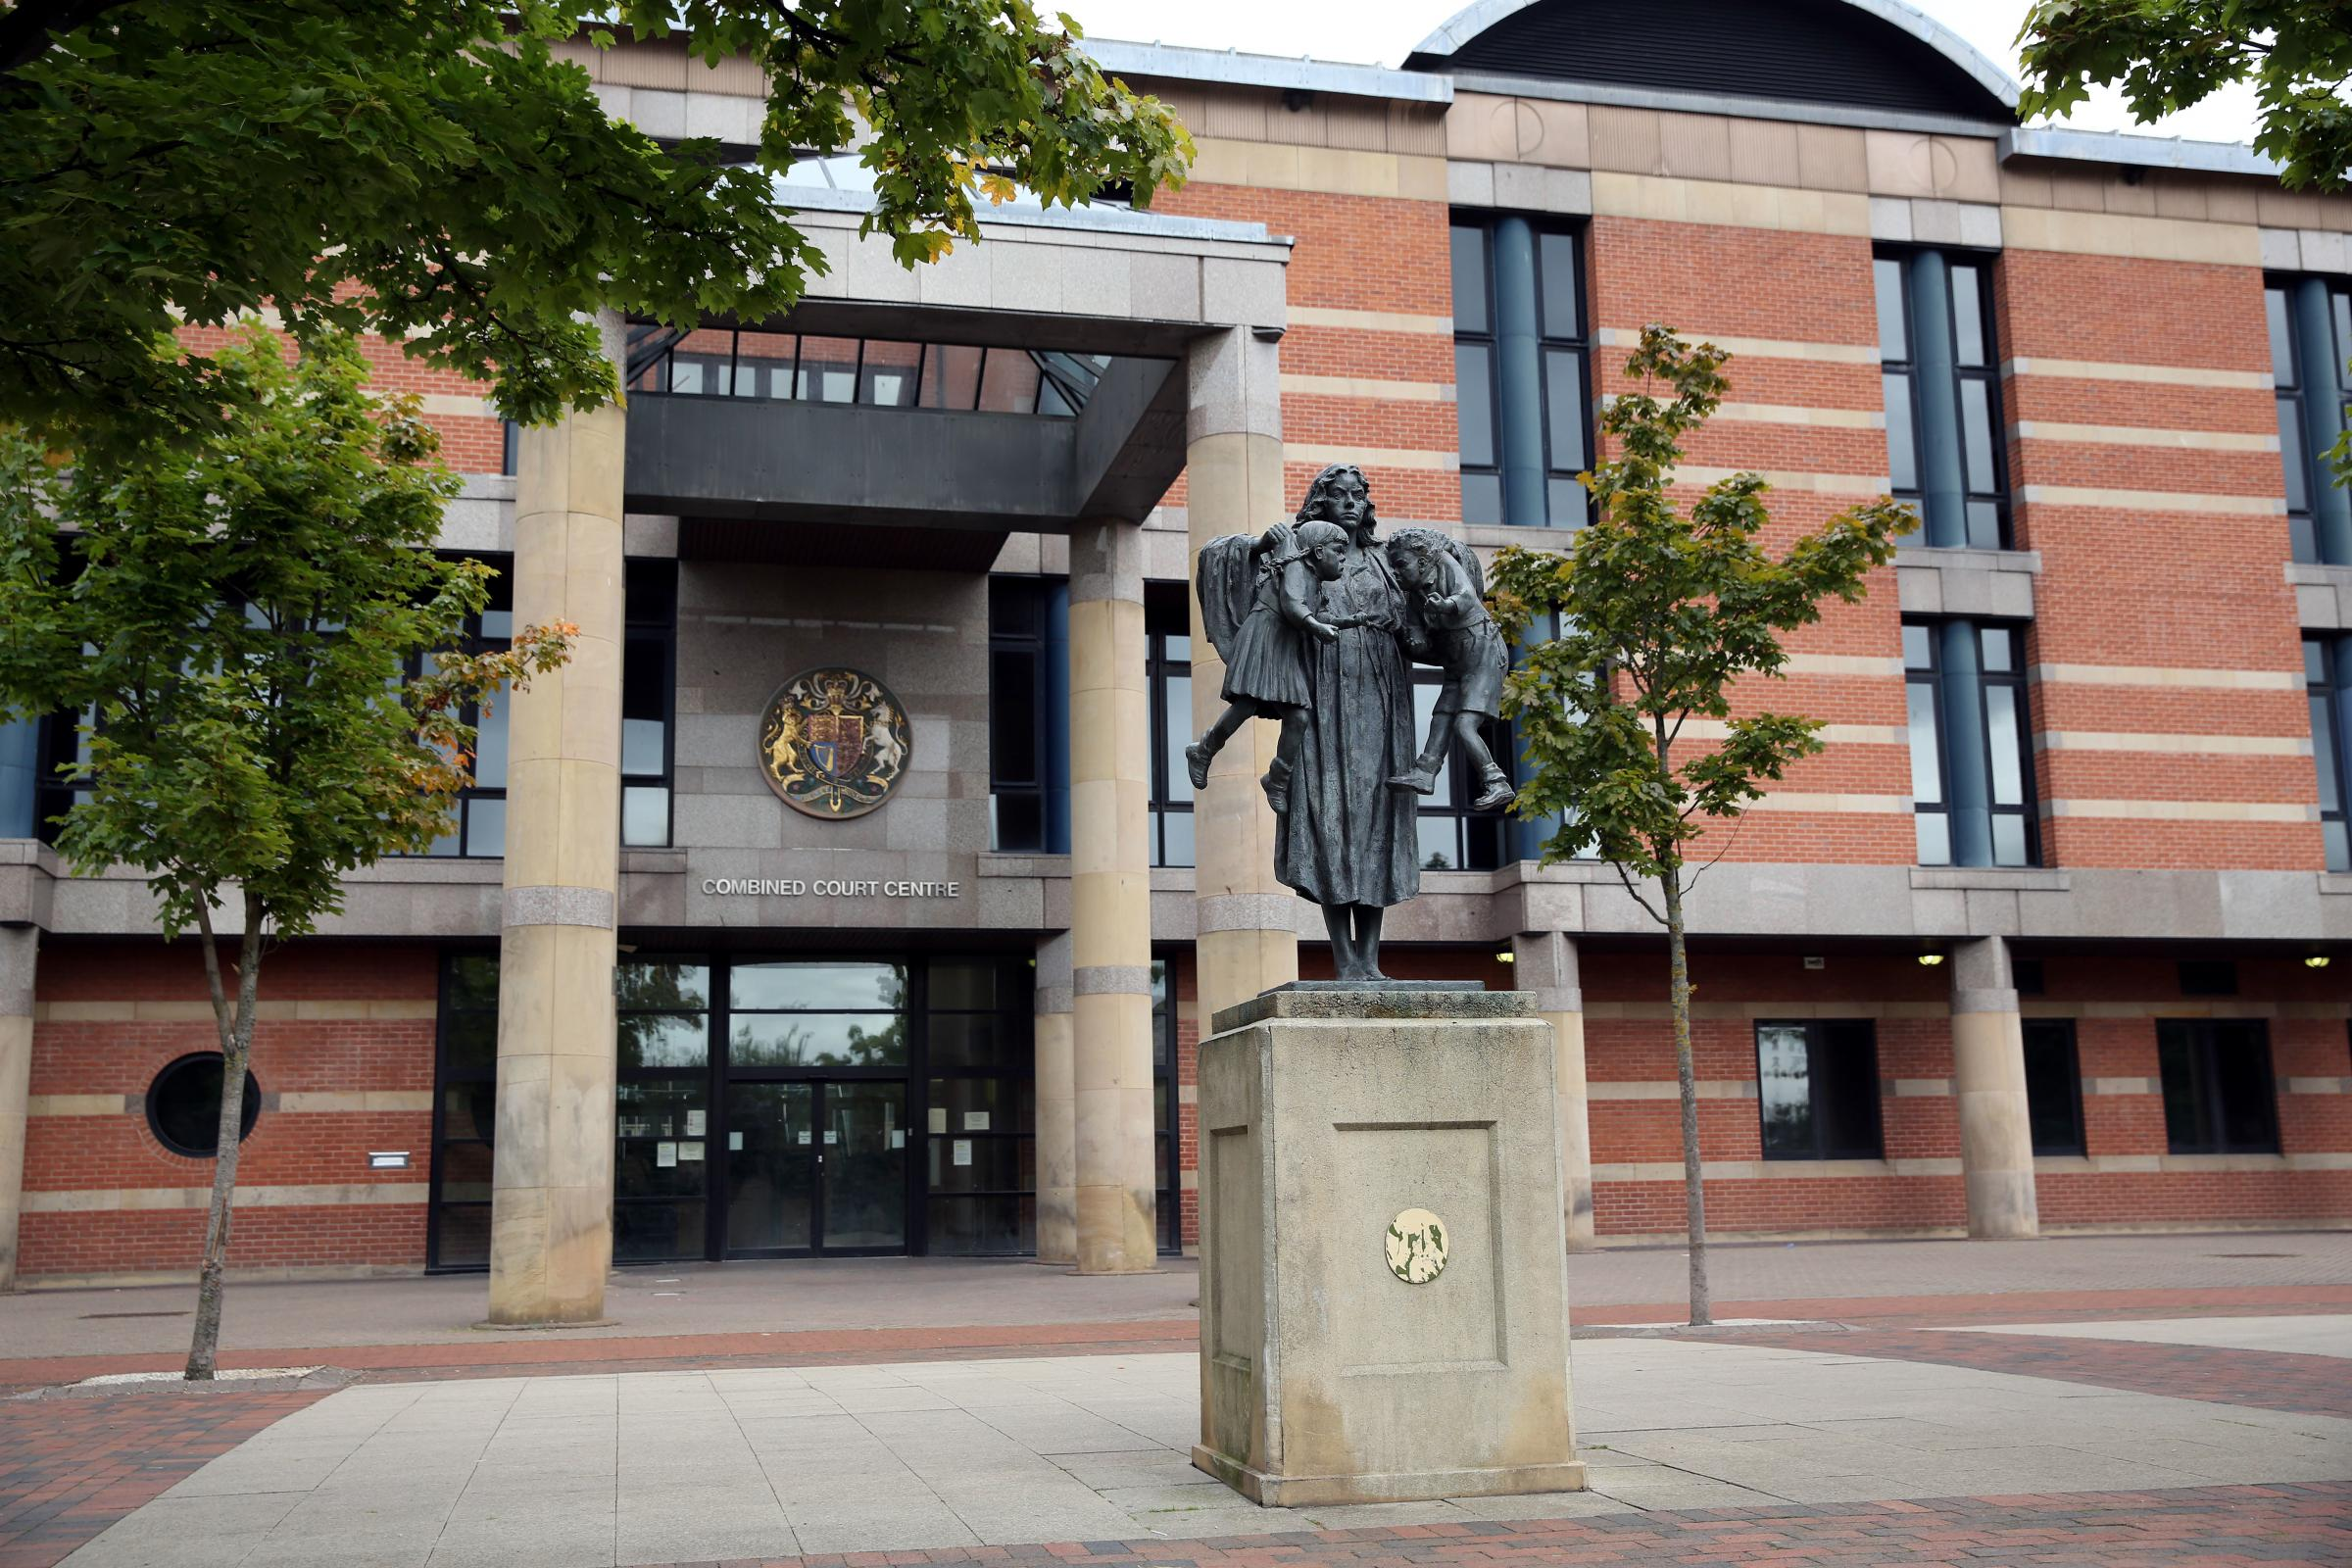 Middlesbrough woman hid smuggled drugs in her 'groin area'